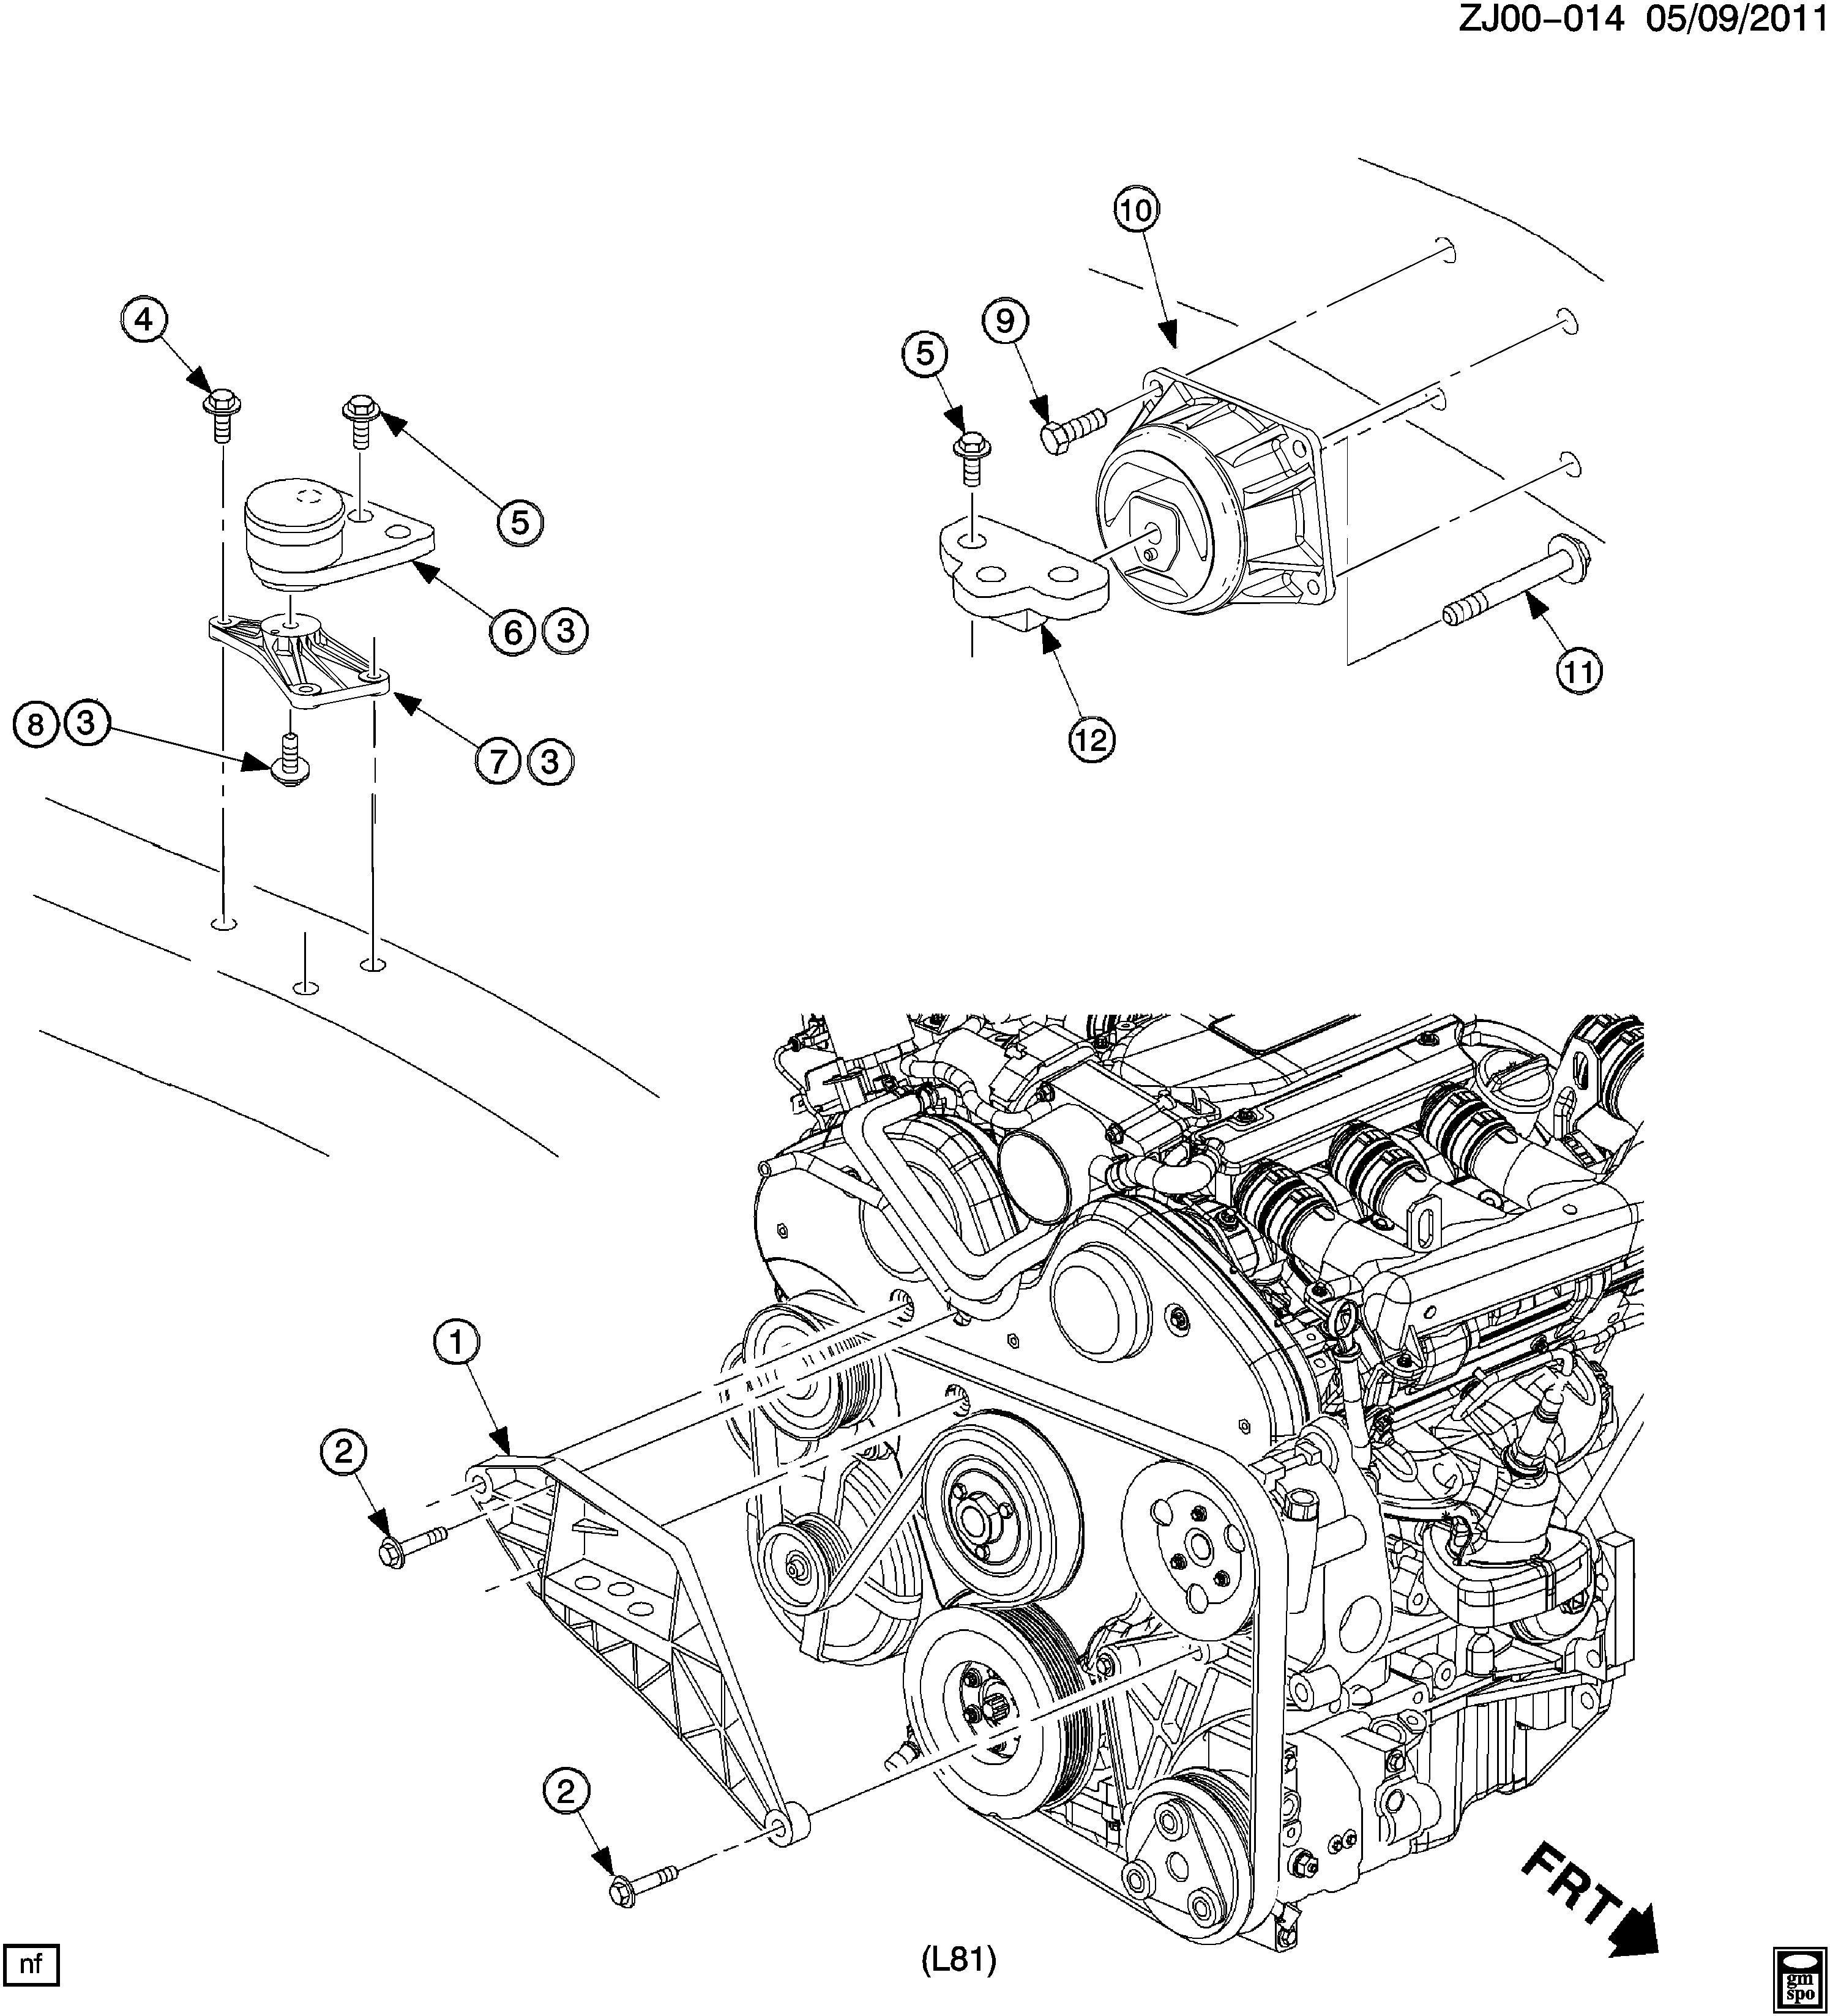 [WQZT_9871]  L81 Engine Diagram. 55351453 gm cover engine valve rocker camshaft cover.  90576087 gm support engine mounting support eng mt. 11100941 gm bolt air  conditioning a c compressor. 24446586 gm body fuel injection | L81 Engine Diagram |  | 2002-acura-tl-radio.info